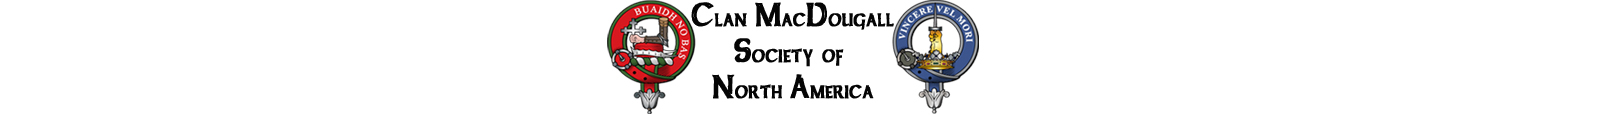 Clan MacDougall Society of North America